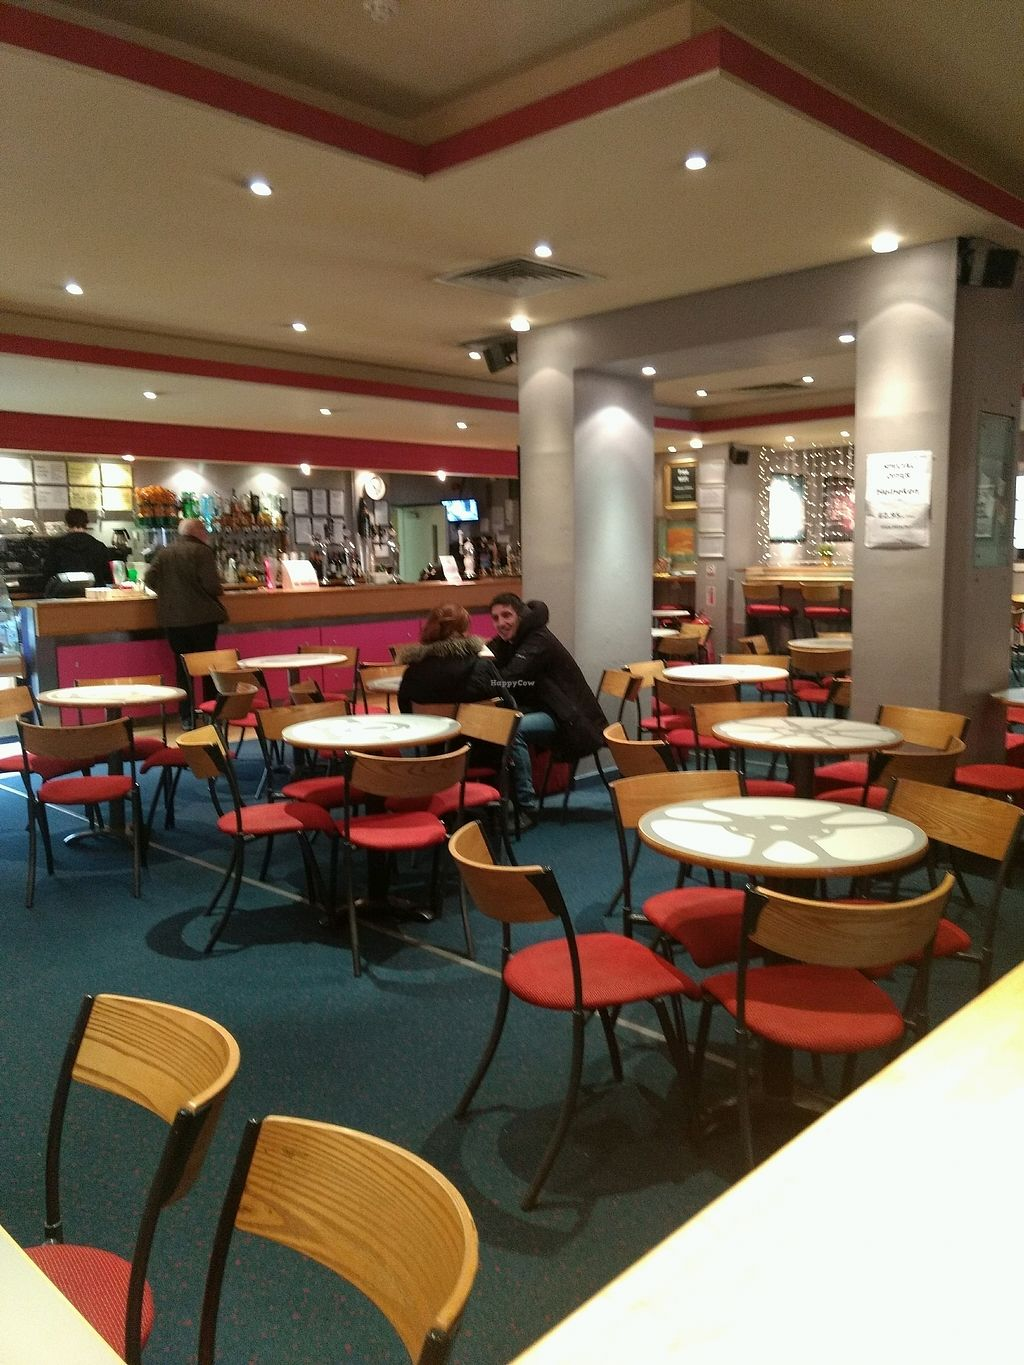 """Photo of Filmhouse Cinema Cafe Bar  by <a href=""""/members/profile/craigmc"""">craigmc</a> <br/>seating <br/> April 1, 2018  - <a href='/contact/abuse/image/42360/379285'>Report</a>"""